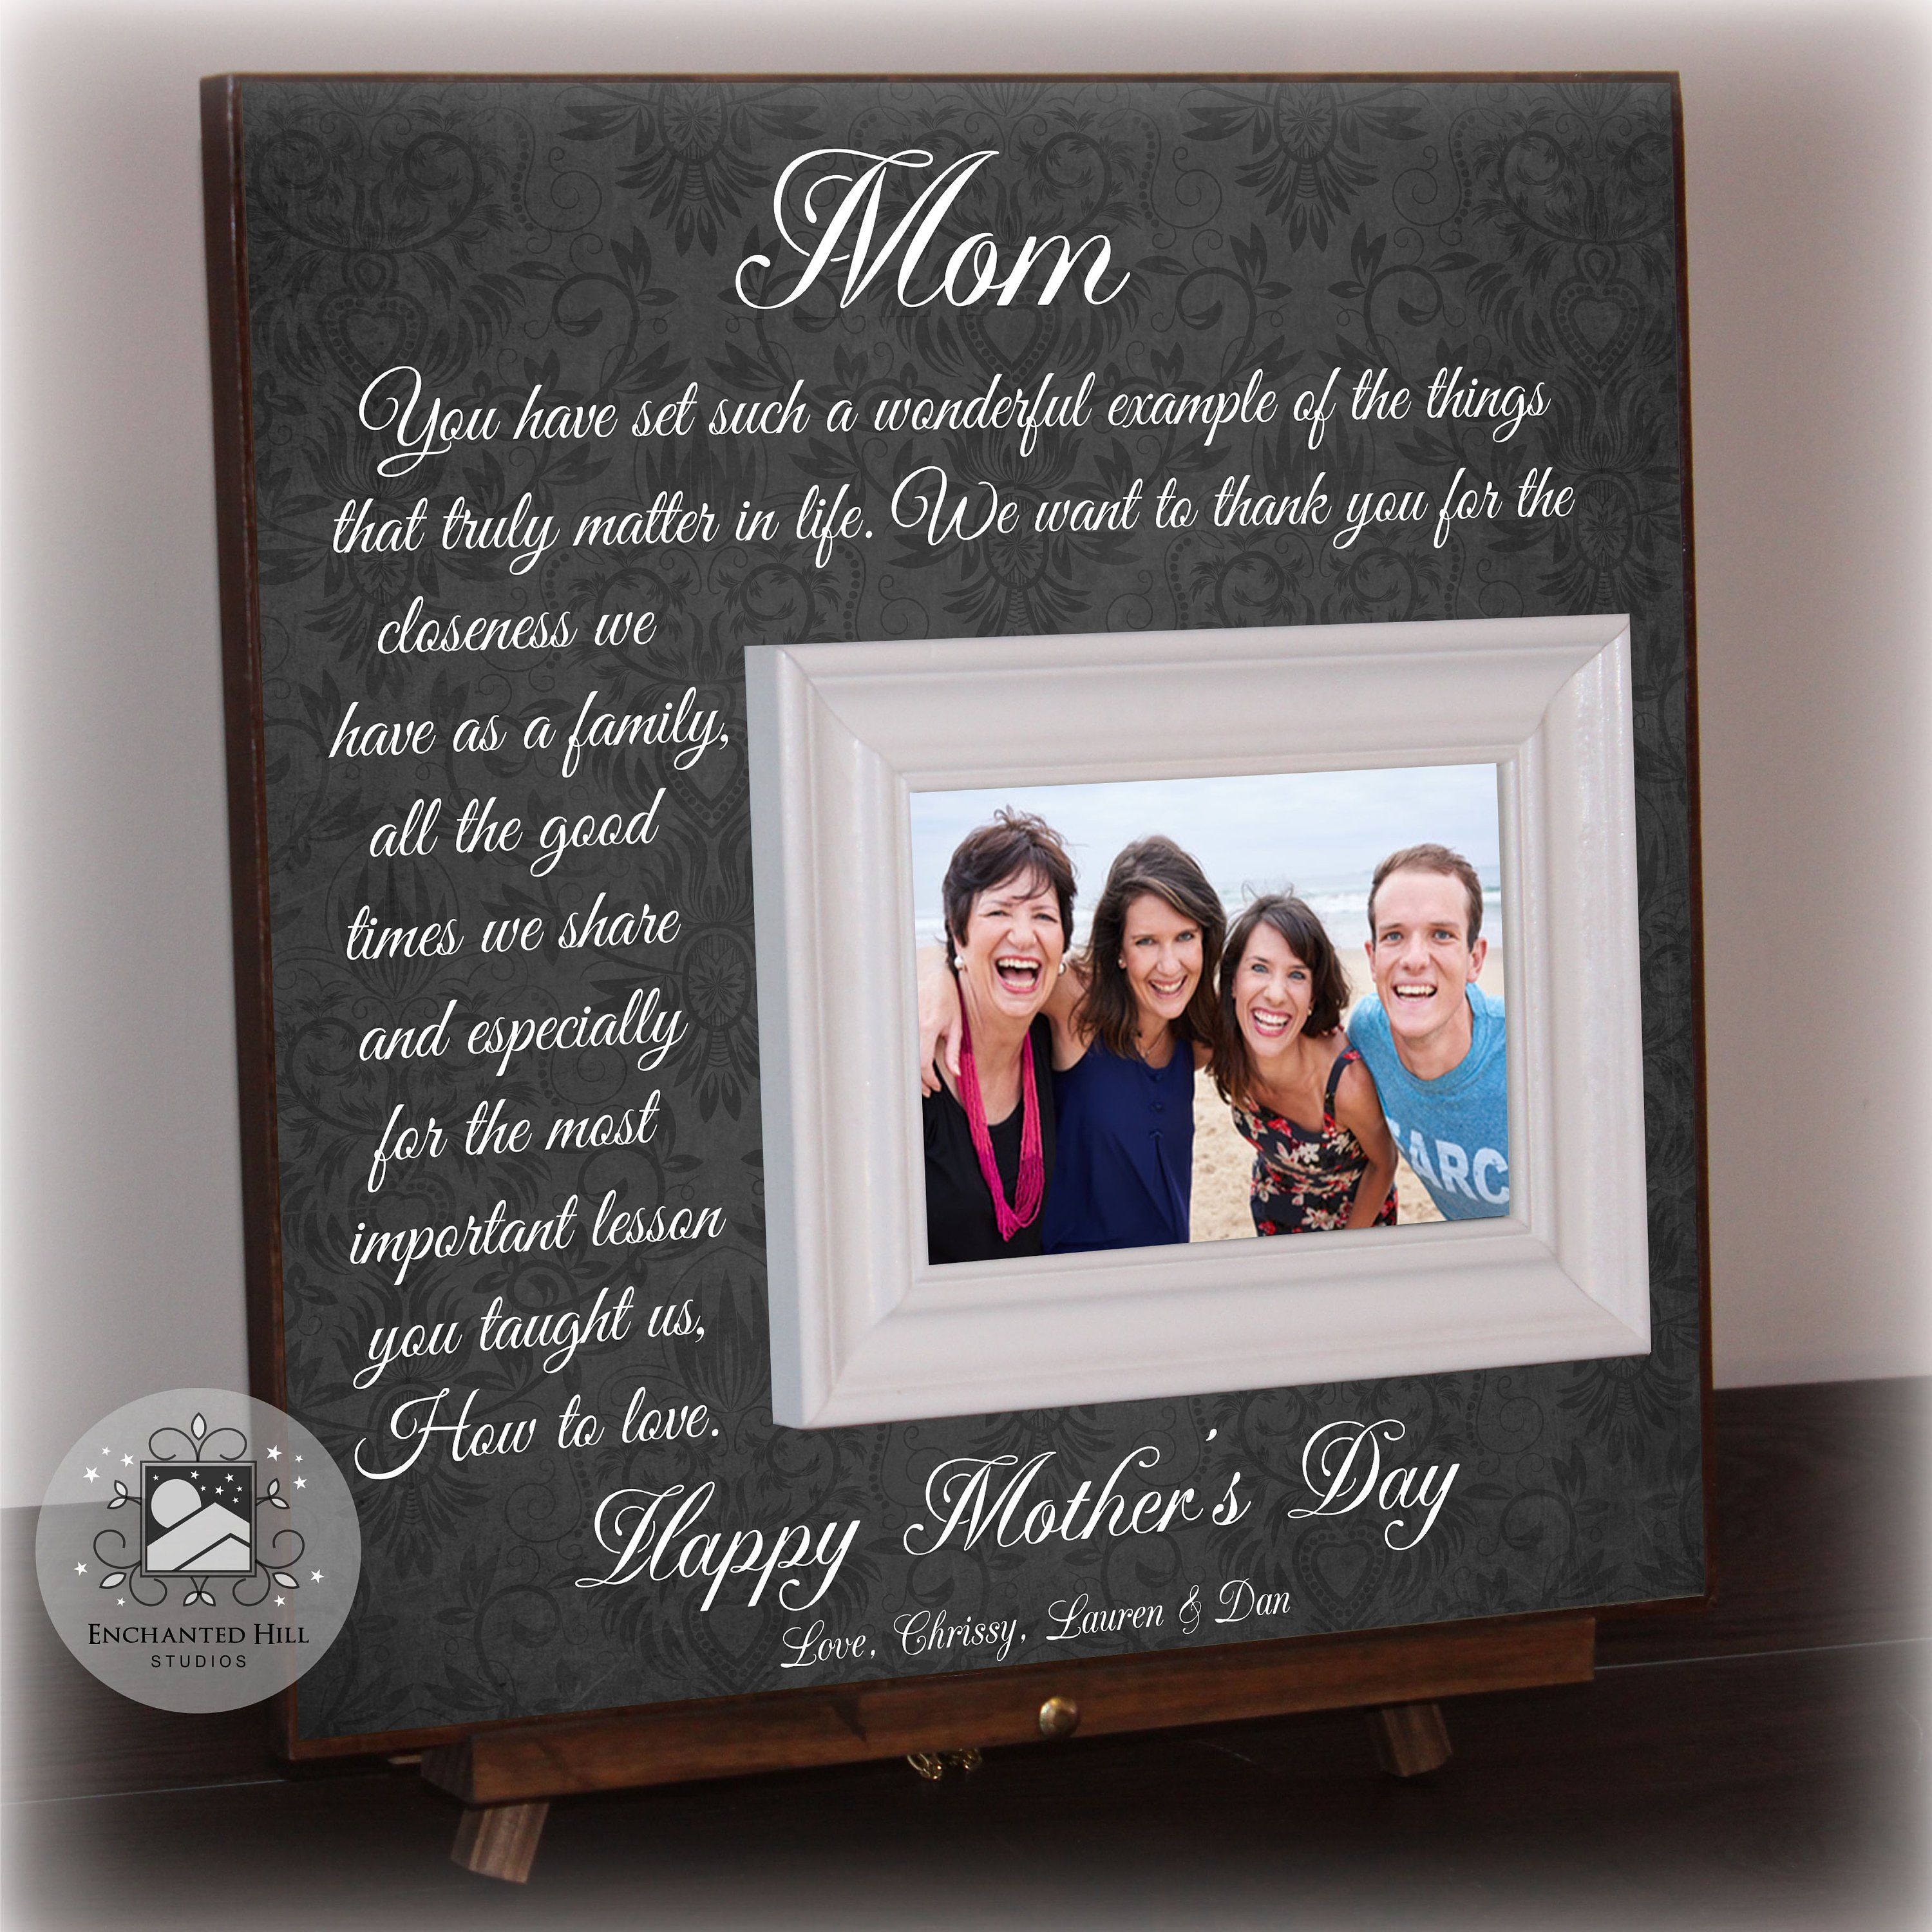 Personalised Mother/'s Day Photo Frame Gift  Mother/'s Day keepsake photo frame Birthday